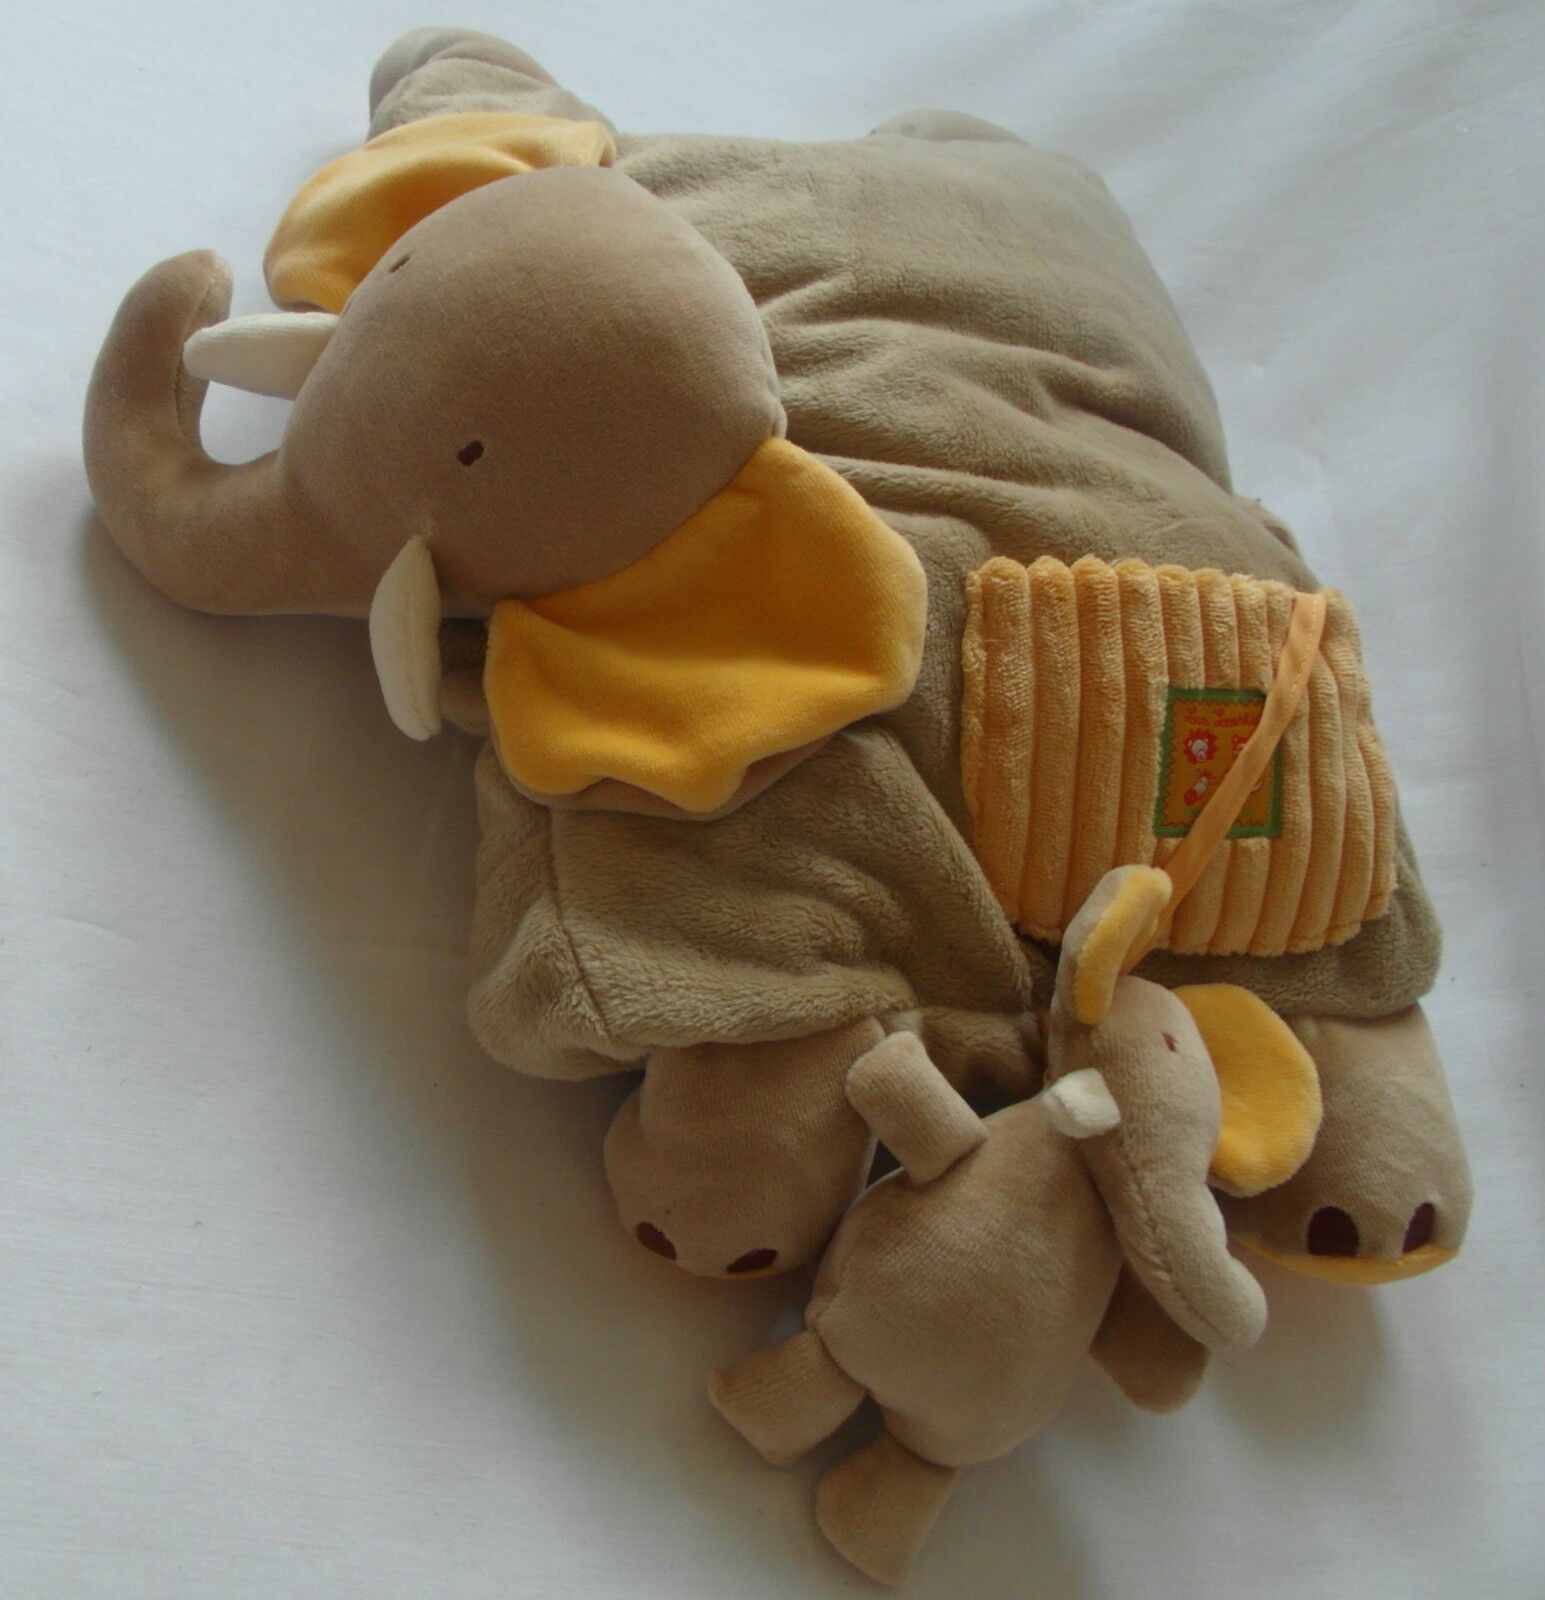 Elephant with Baby - 2 in 1 Soft Cushion Cuddly Toy Baby Shower Birthday Toddler